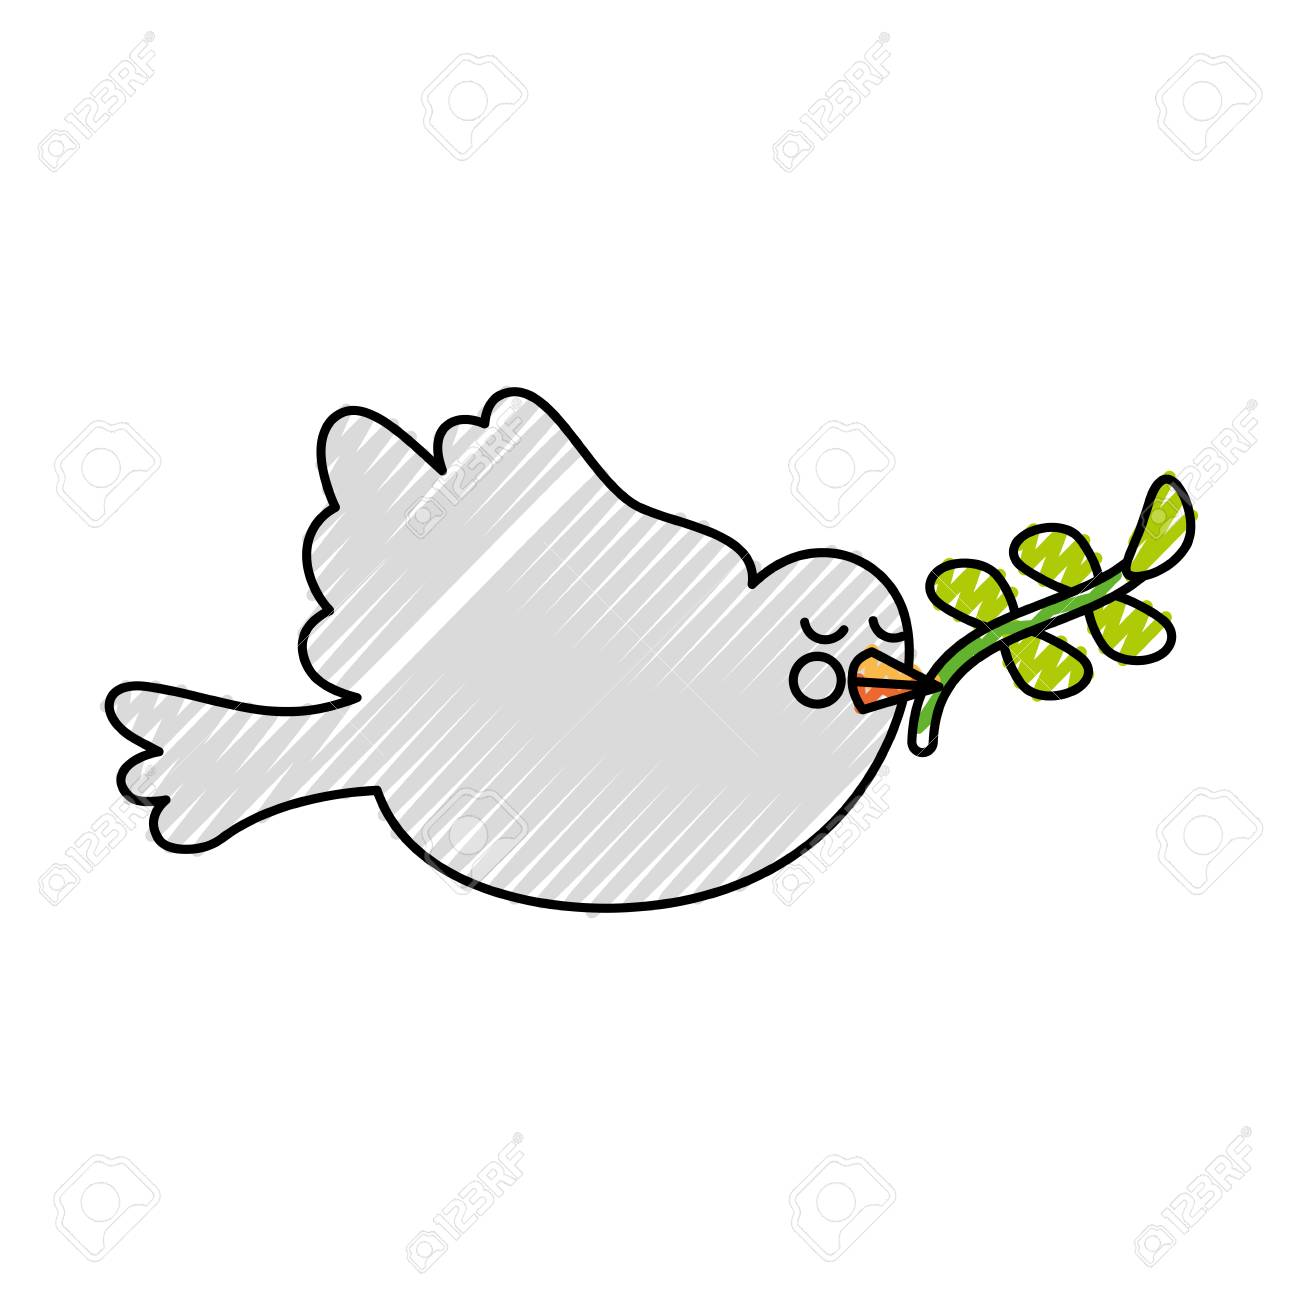 Cute Dove With Olive Branch Vector Illustration Design Royalty Free Cliparts Vetores E Ilustracoes Stock Image 84733893